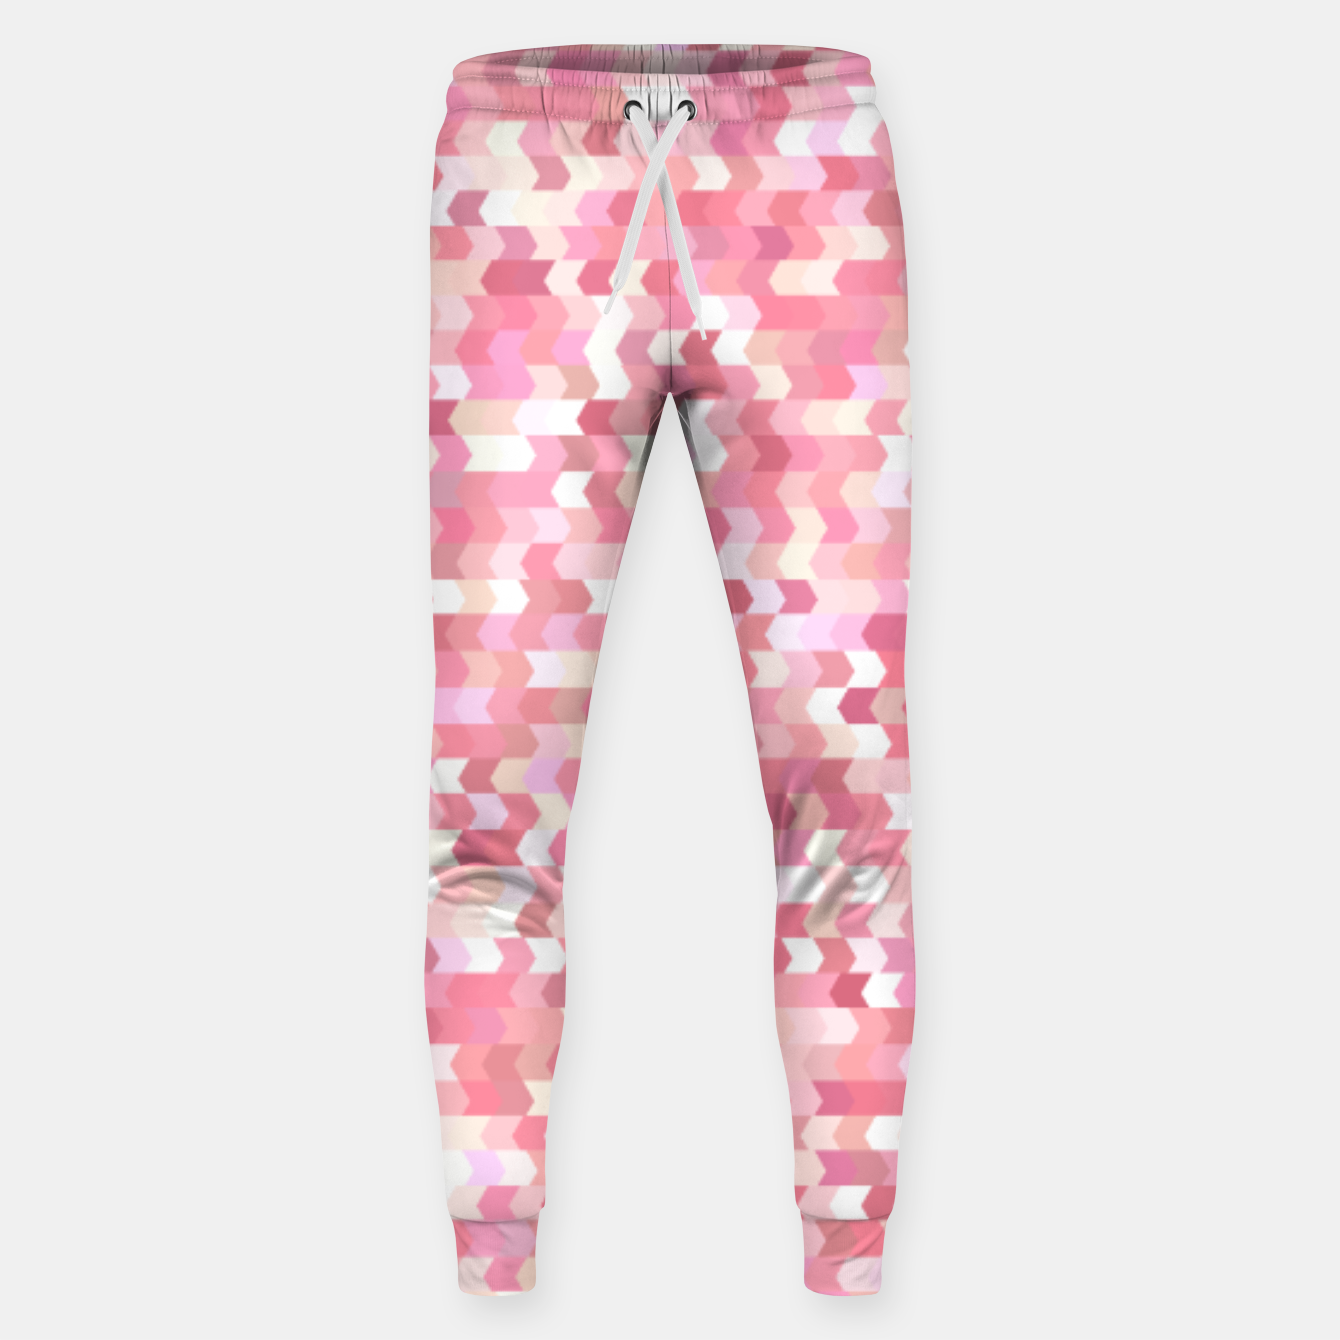 Foto Solid arrows in soft pink shades, cute baby flush pink pattern Sweatpants - Live Heroes